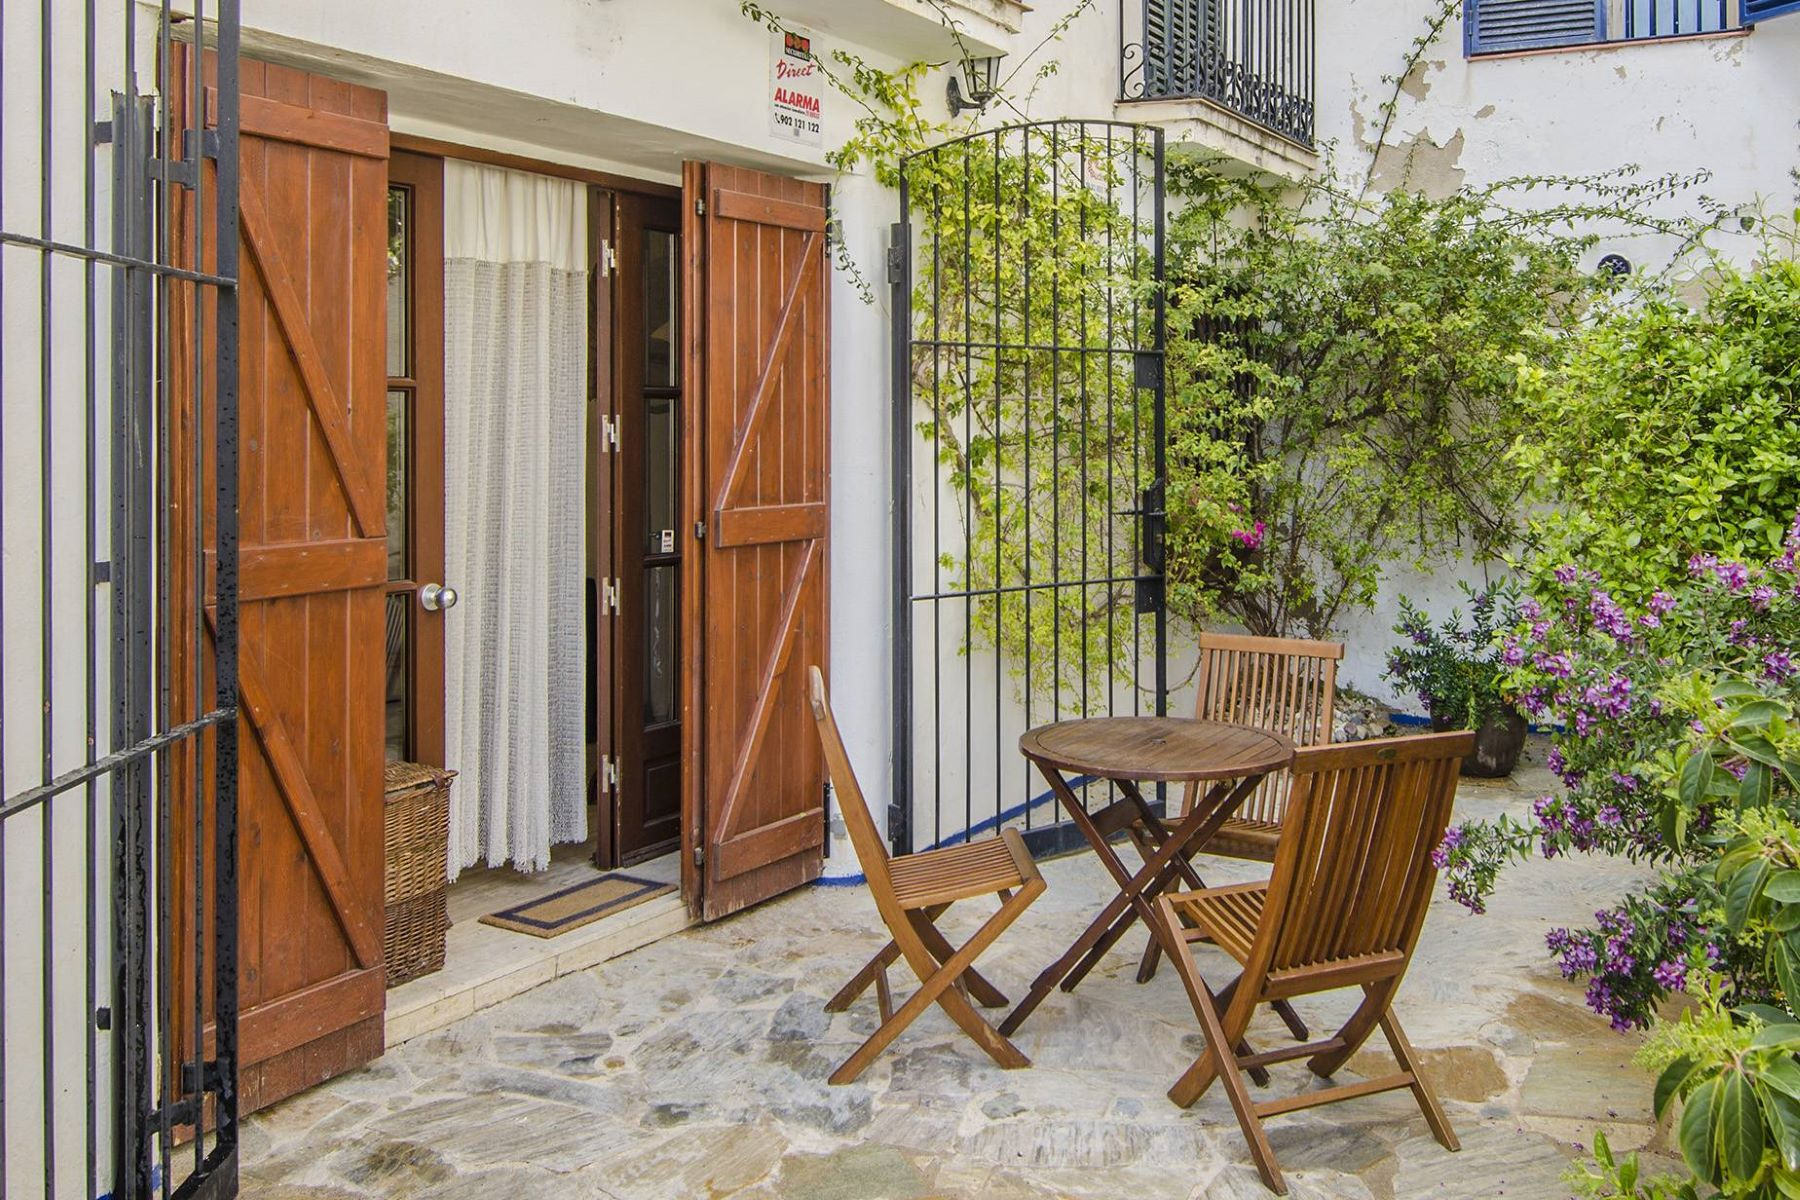 Appartement pour l Vente à Apartment within walking distance to the beach in Sitges Sitges, Barcelona, 08870 Espagne